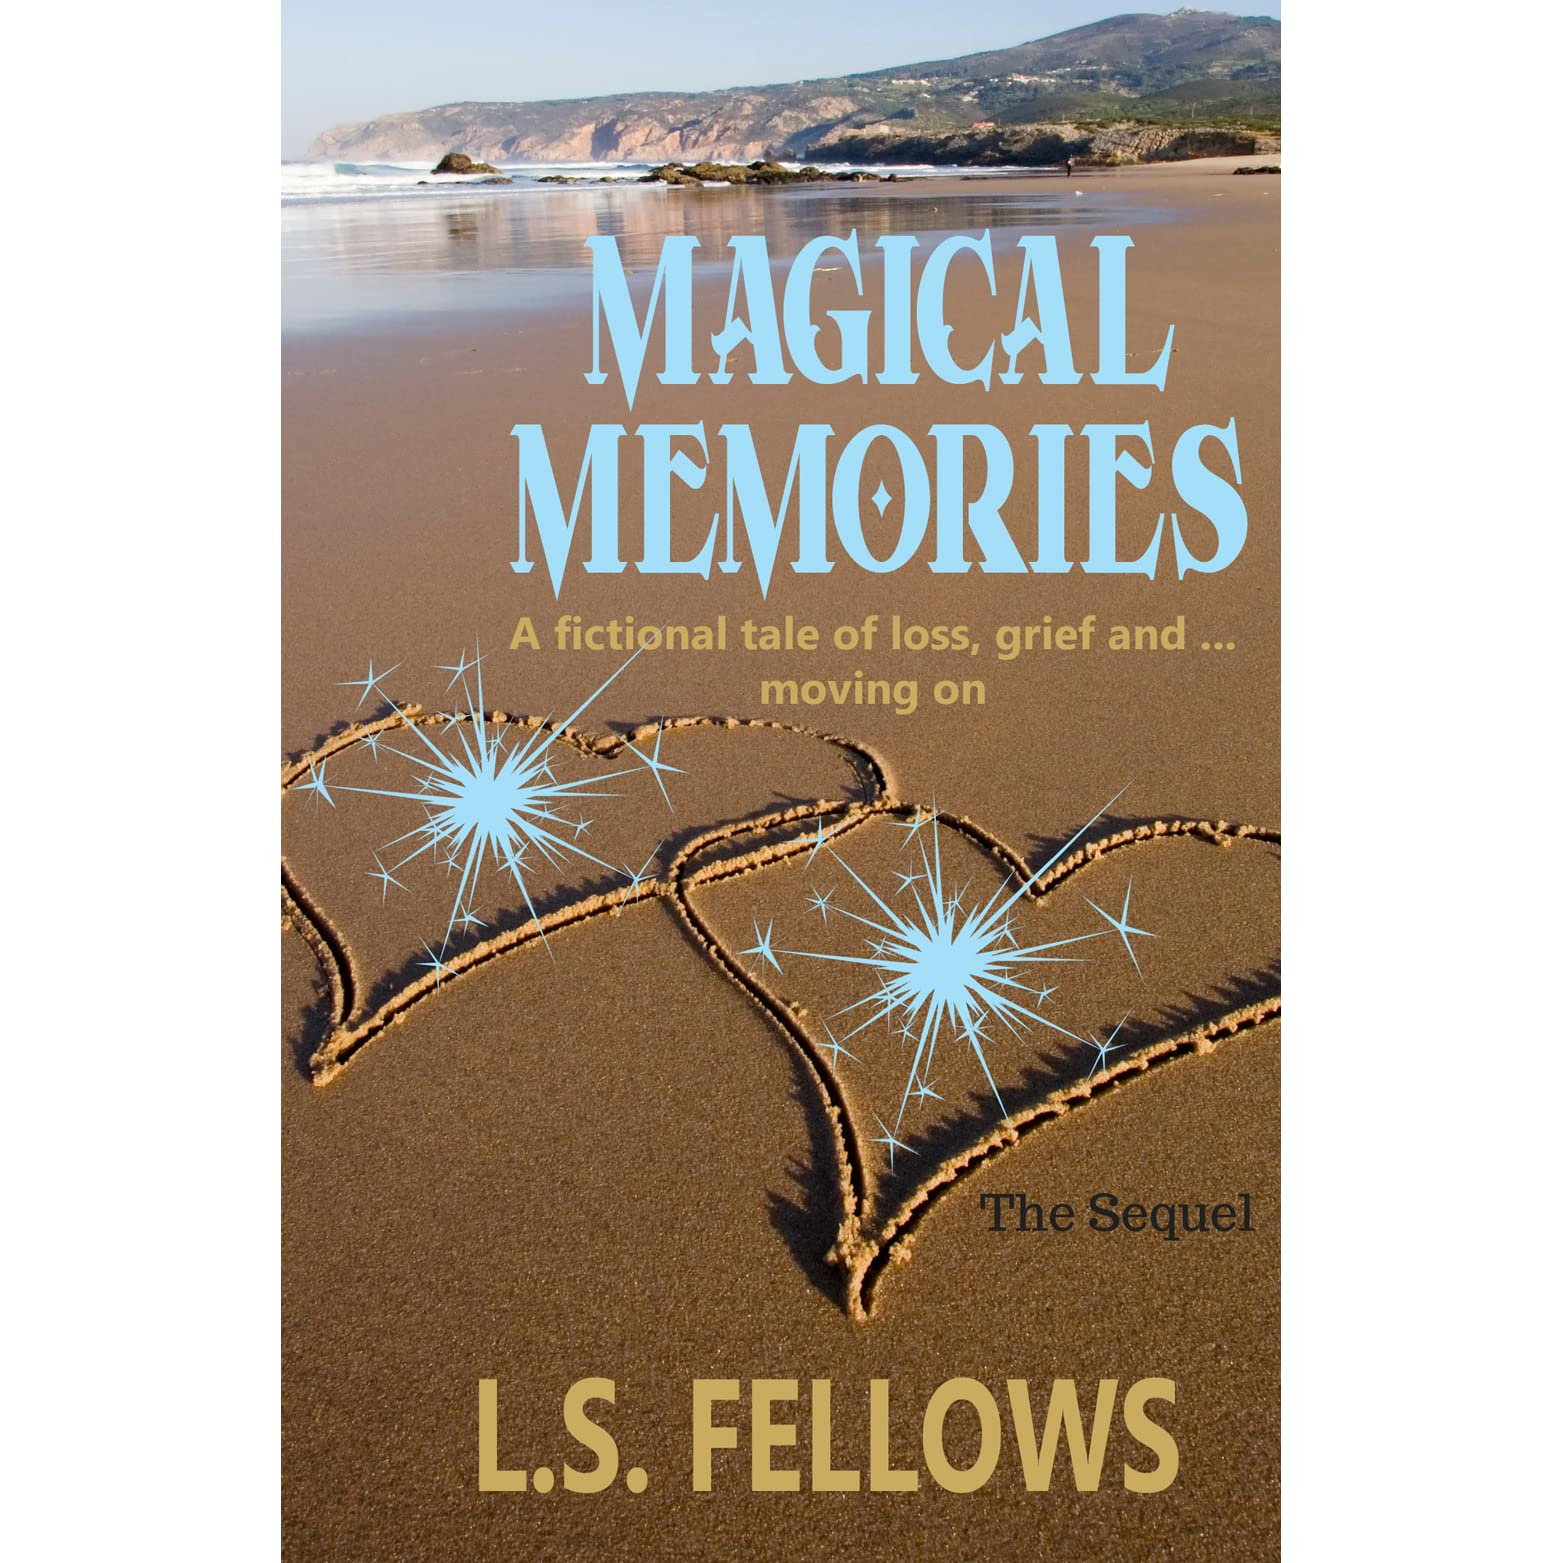 Magical Memories: A fictional tale of loss, grief, and